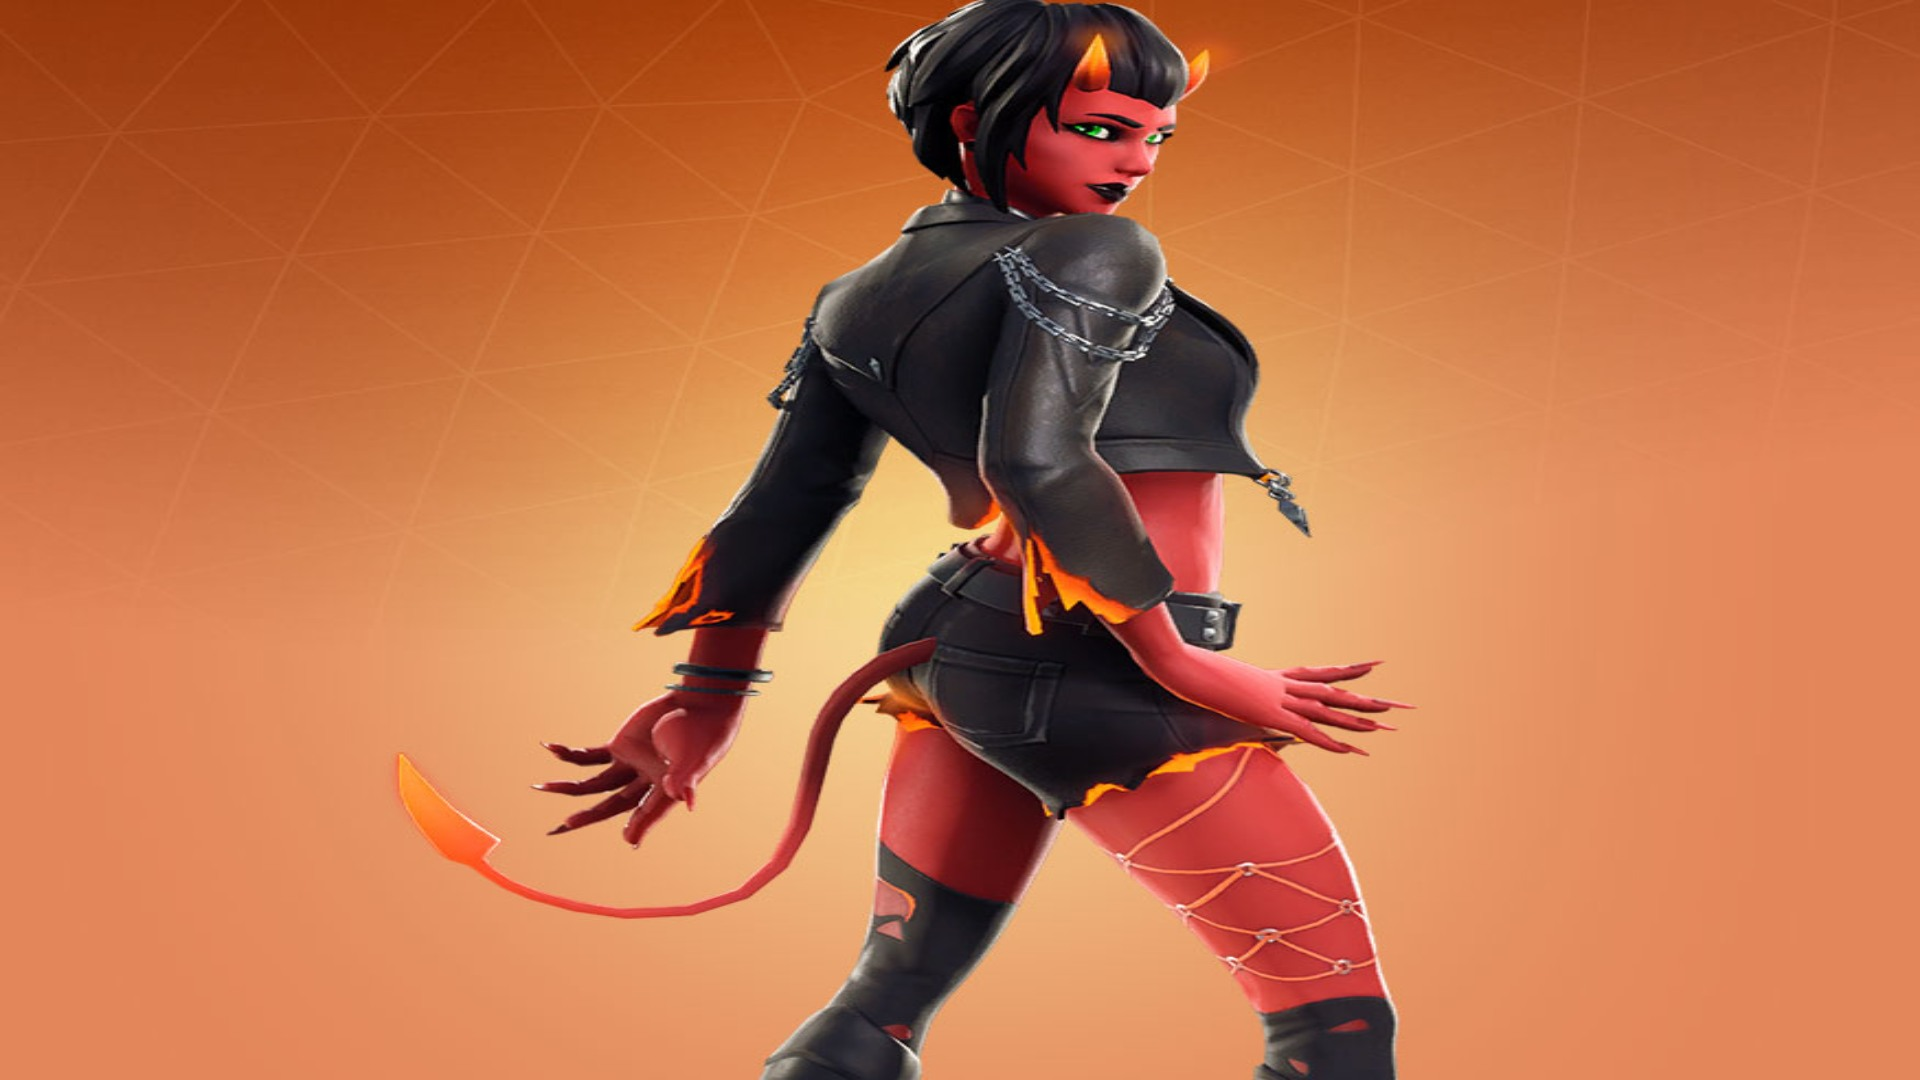 Malice Fortnite Skin Wallpaper